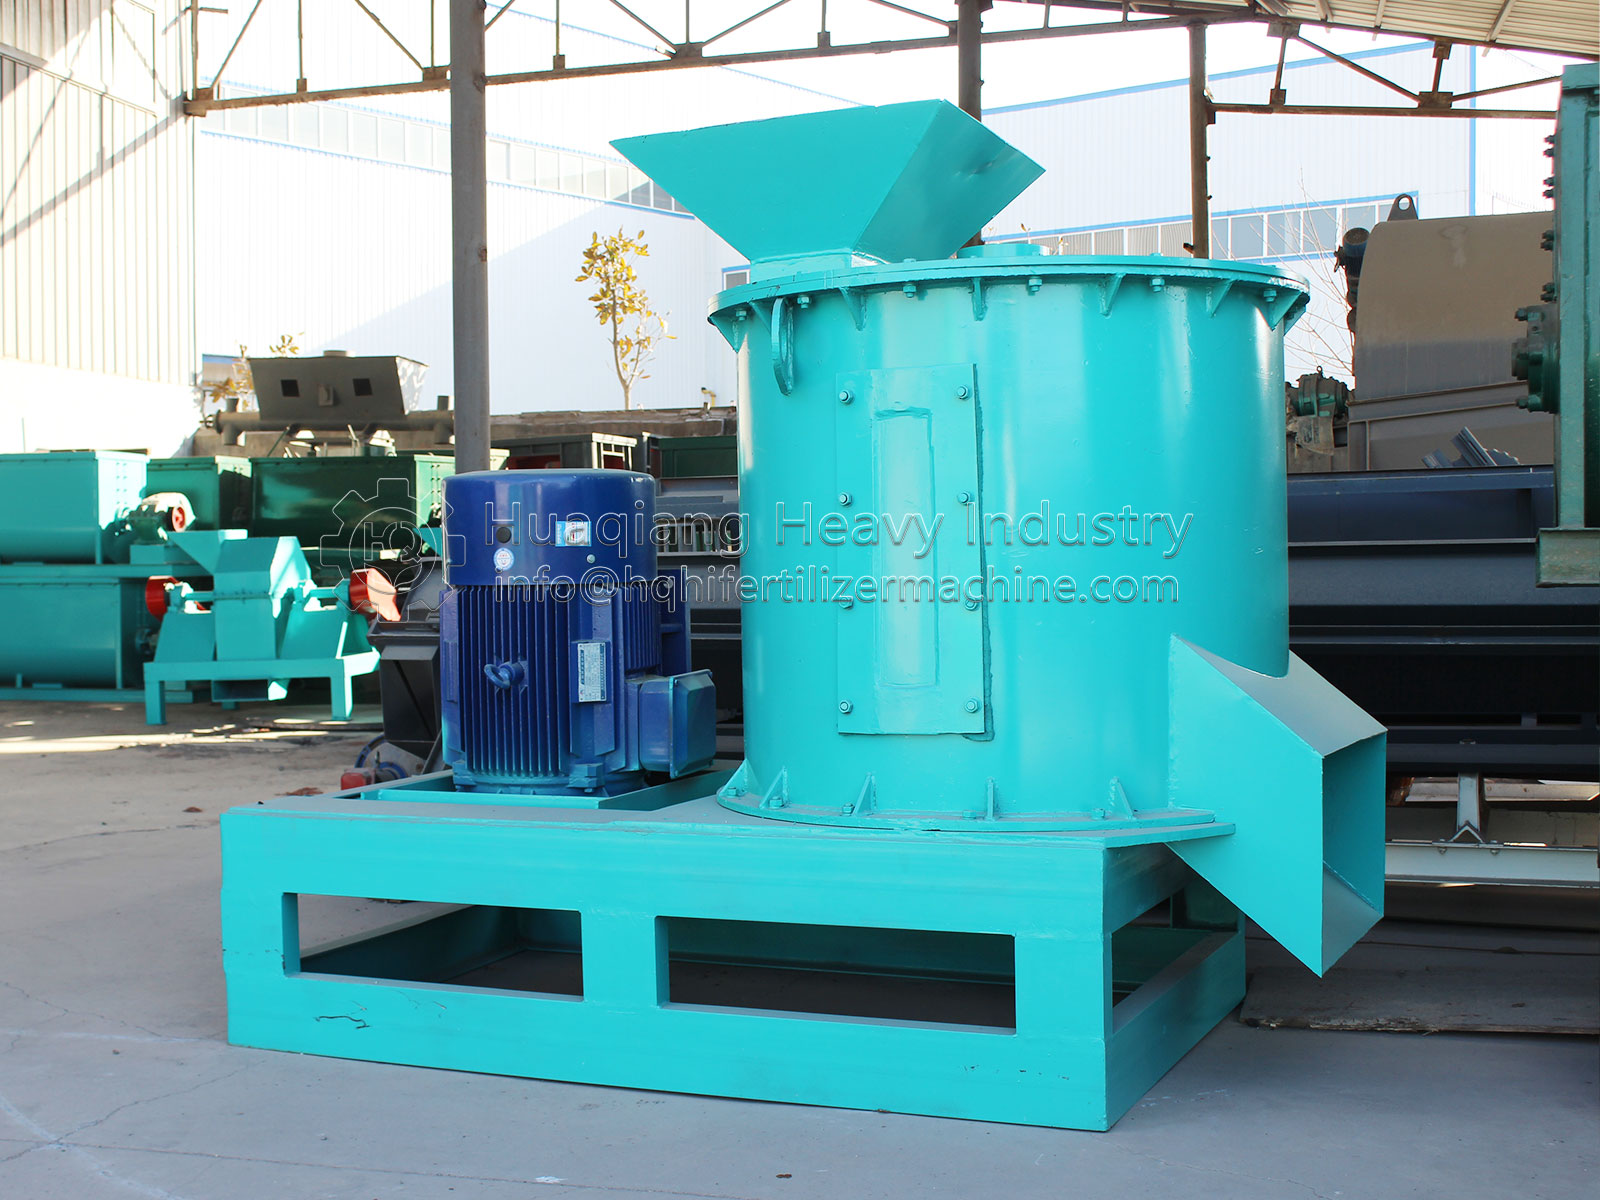 Introduction to the configuration of semi wet material crusher for organic fertilizer